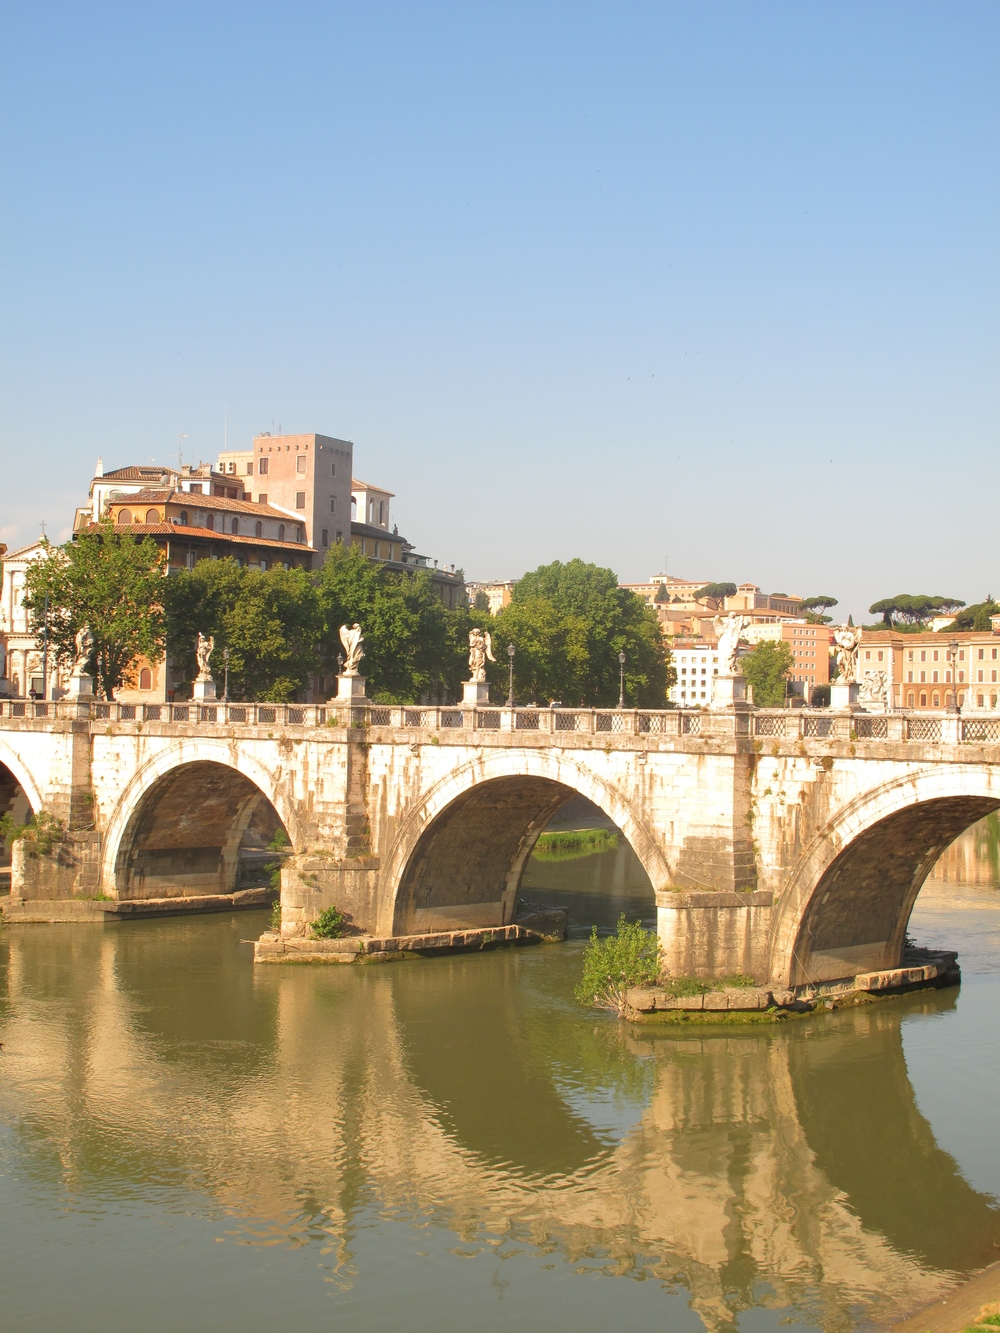 Bridges near the Castel Sant'Angelo